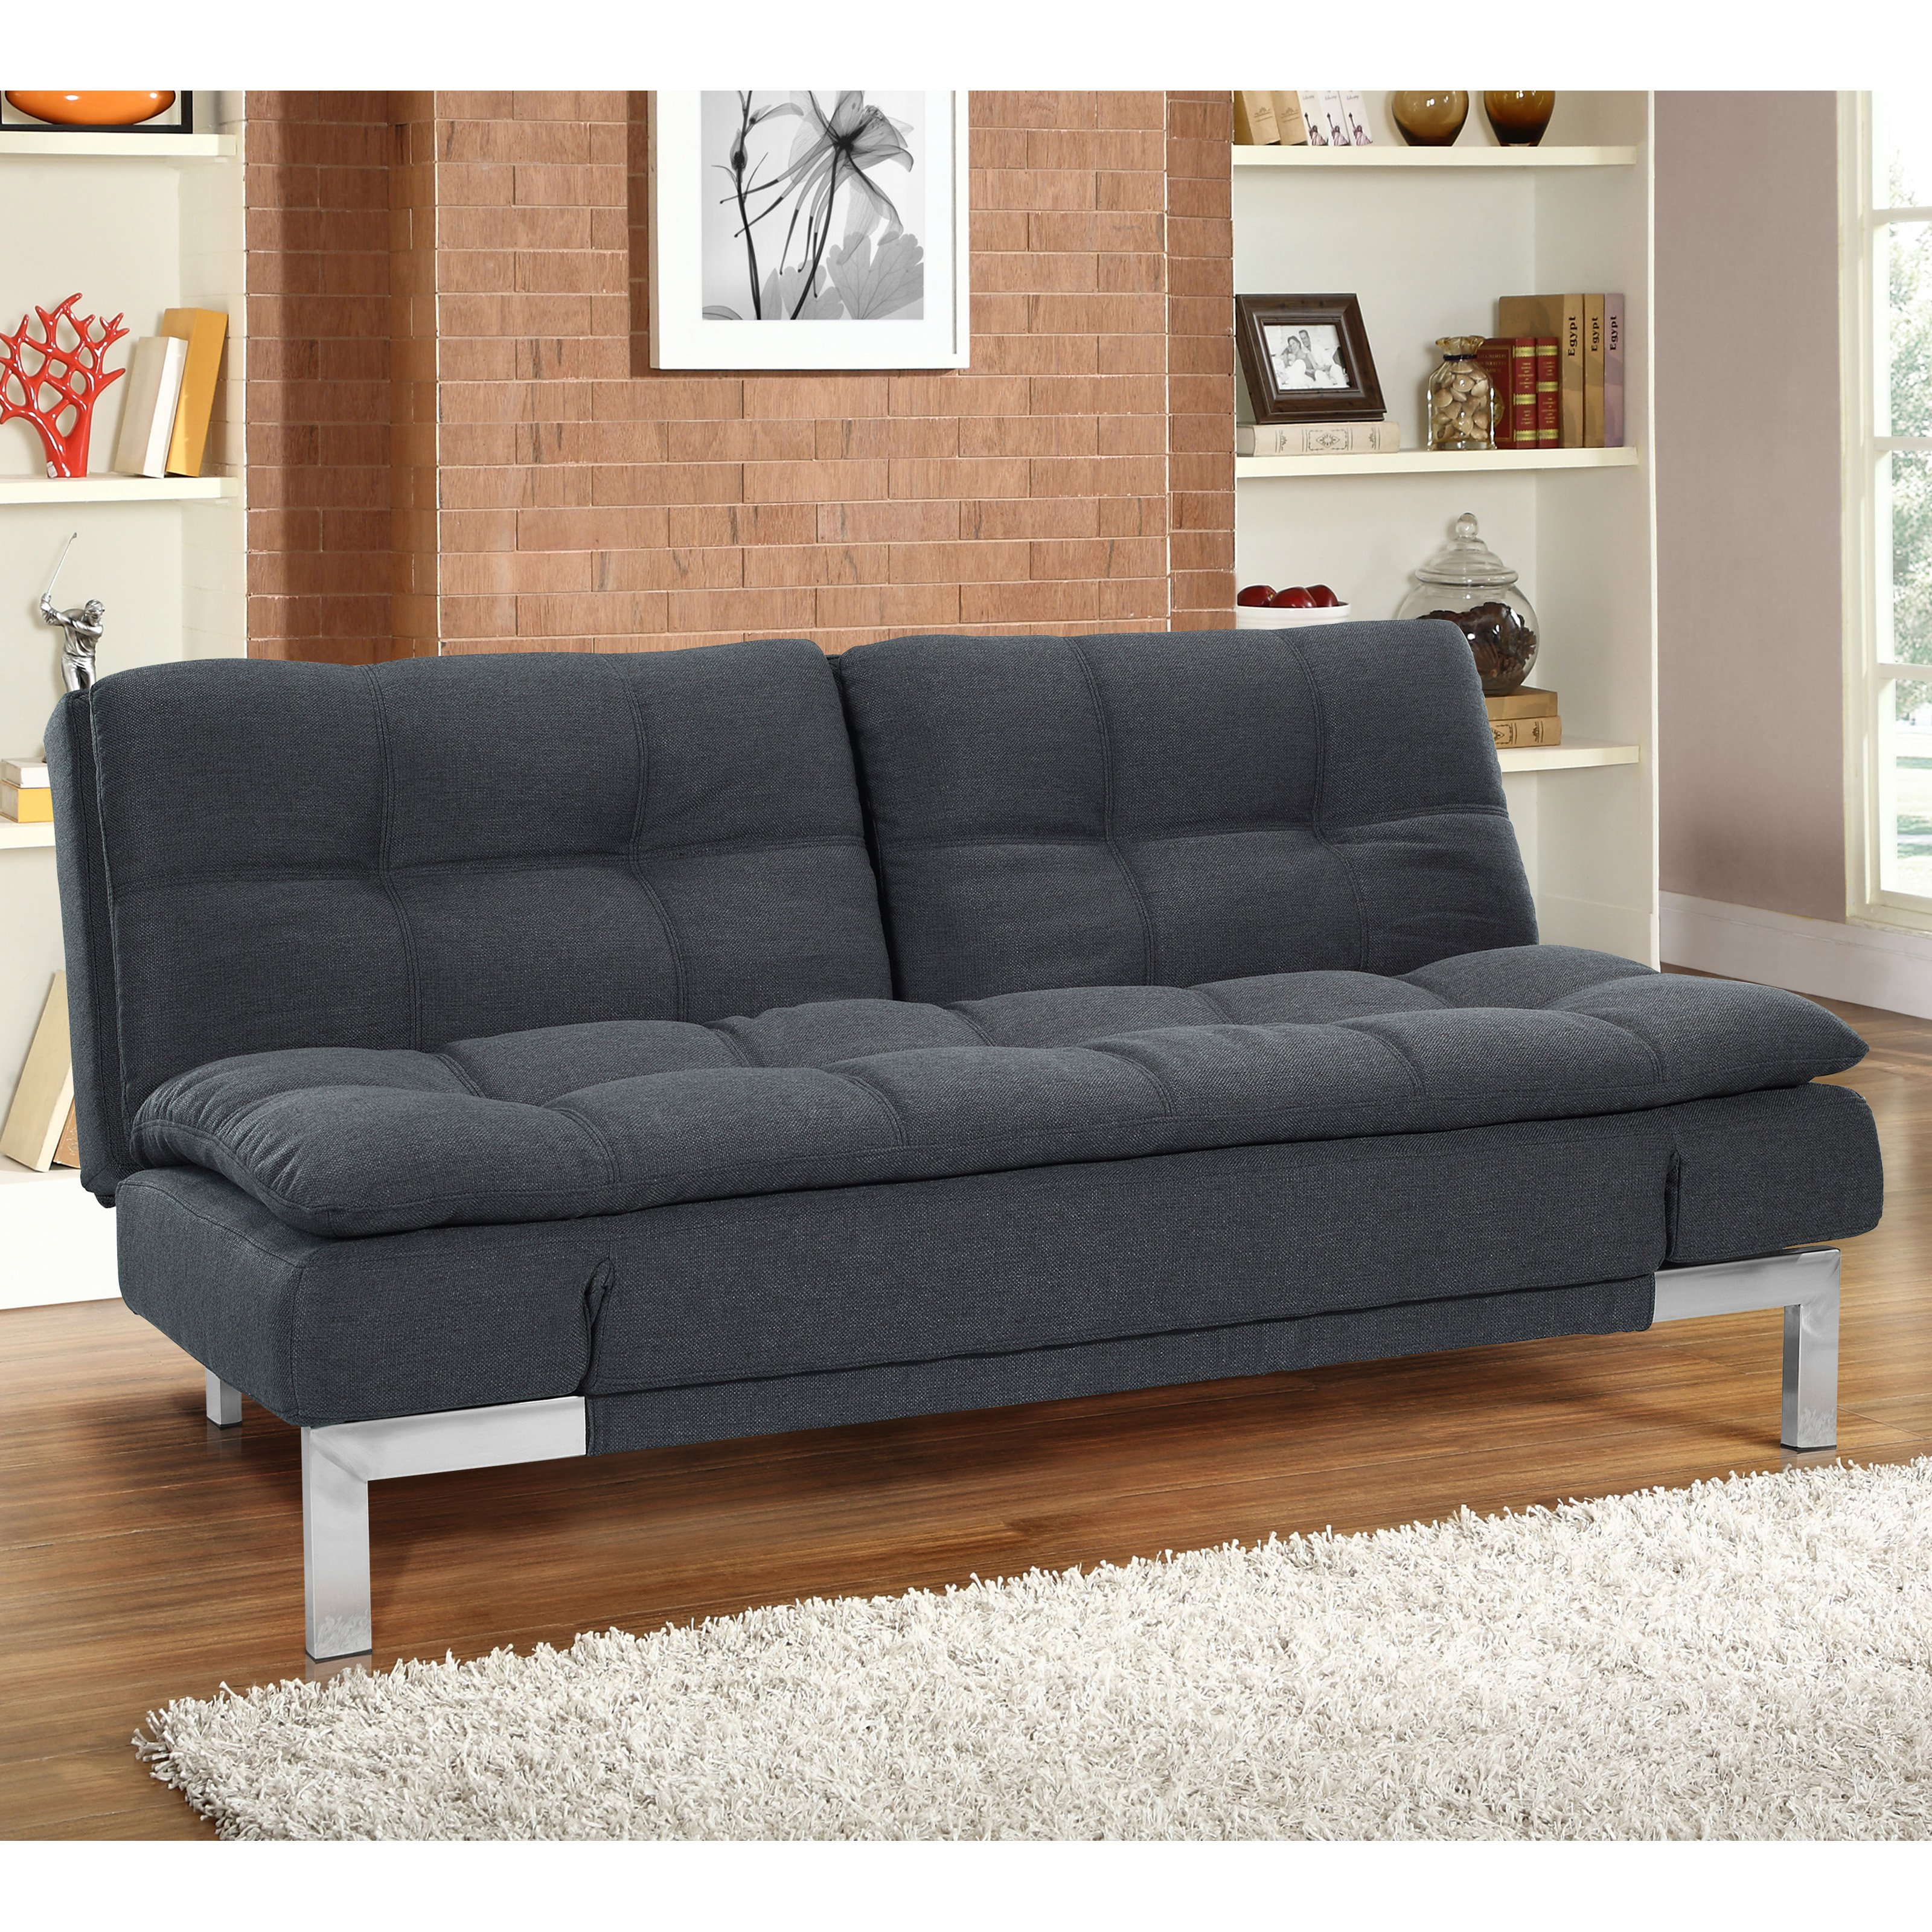 New Serta Sofa 42 About Remodel Sofa Room Ideas with Serta Sofa